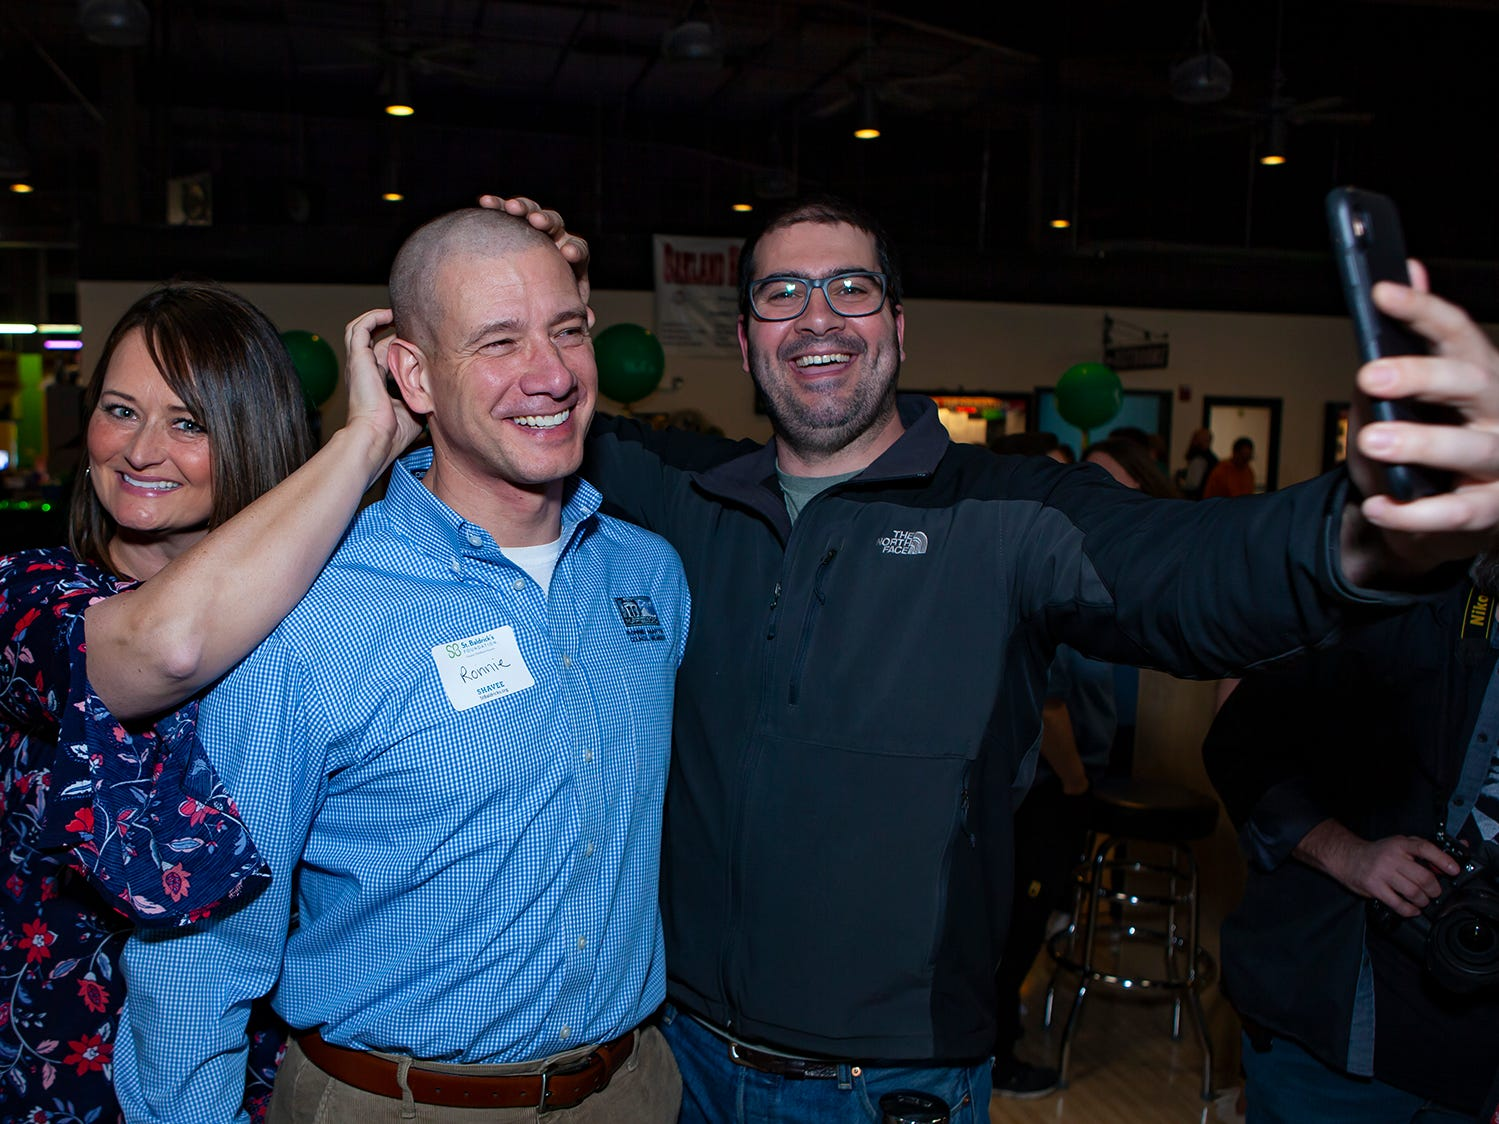 More than 80 volunteers participated in the ninth annual Bald in the Boro fundraiser for the St. Baldrick's Foundation, which fights childhood cancer. The event was held Friday, March 15, 2019 at Lanes, Trains and Automobiles in Murfreesboro.